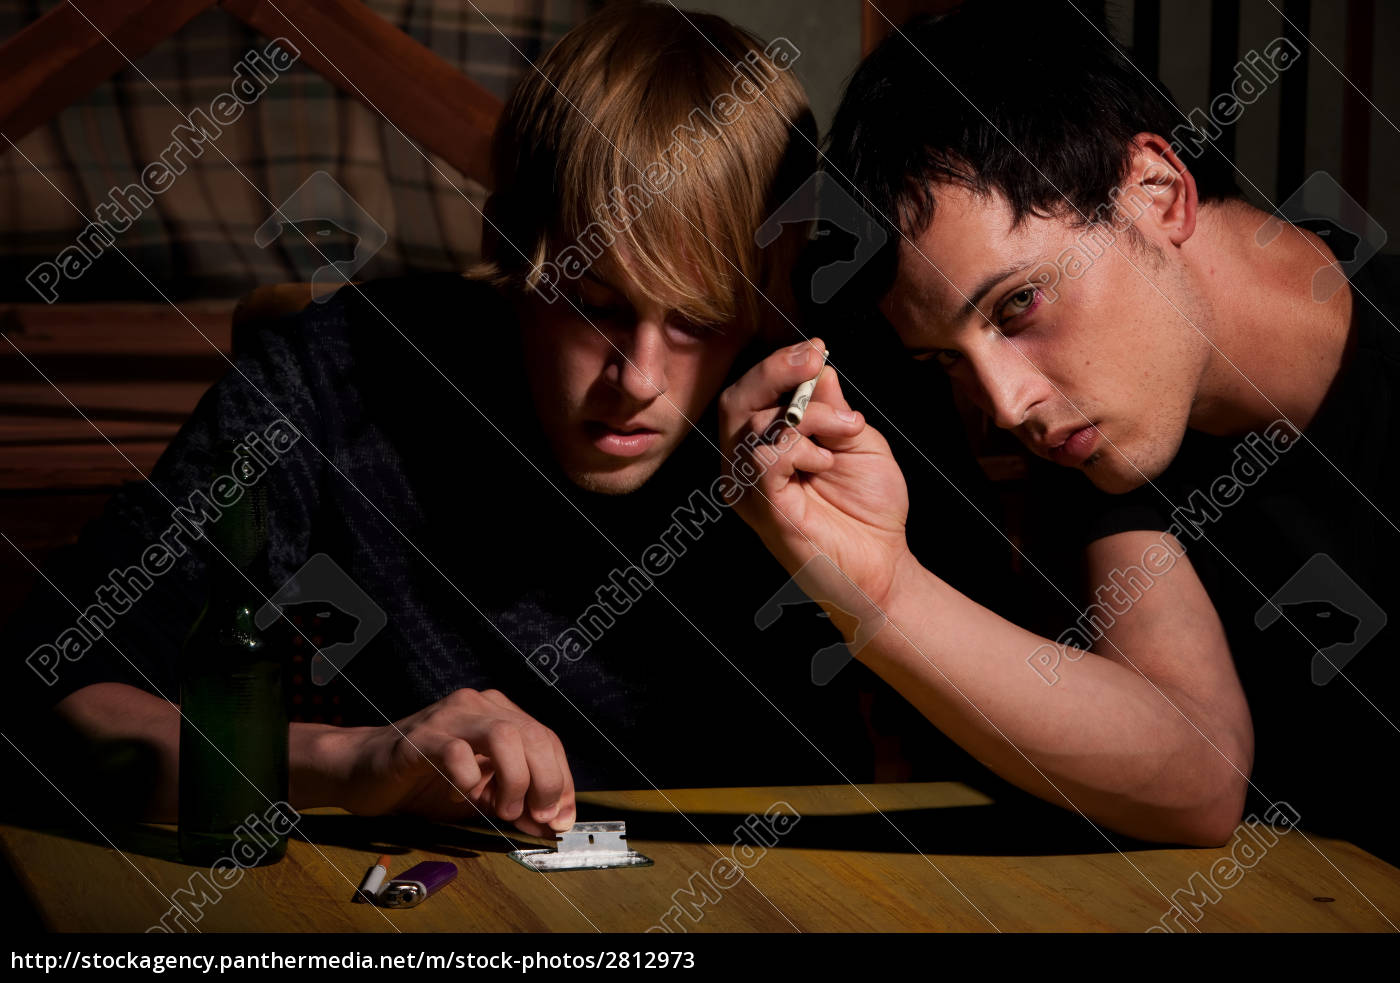 two, men, with, heroin, cooking, in - 2812973